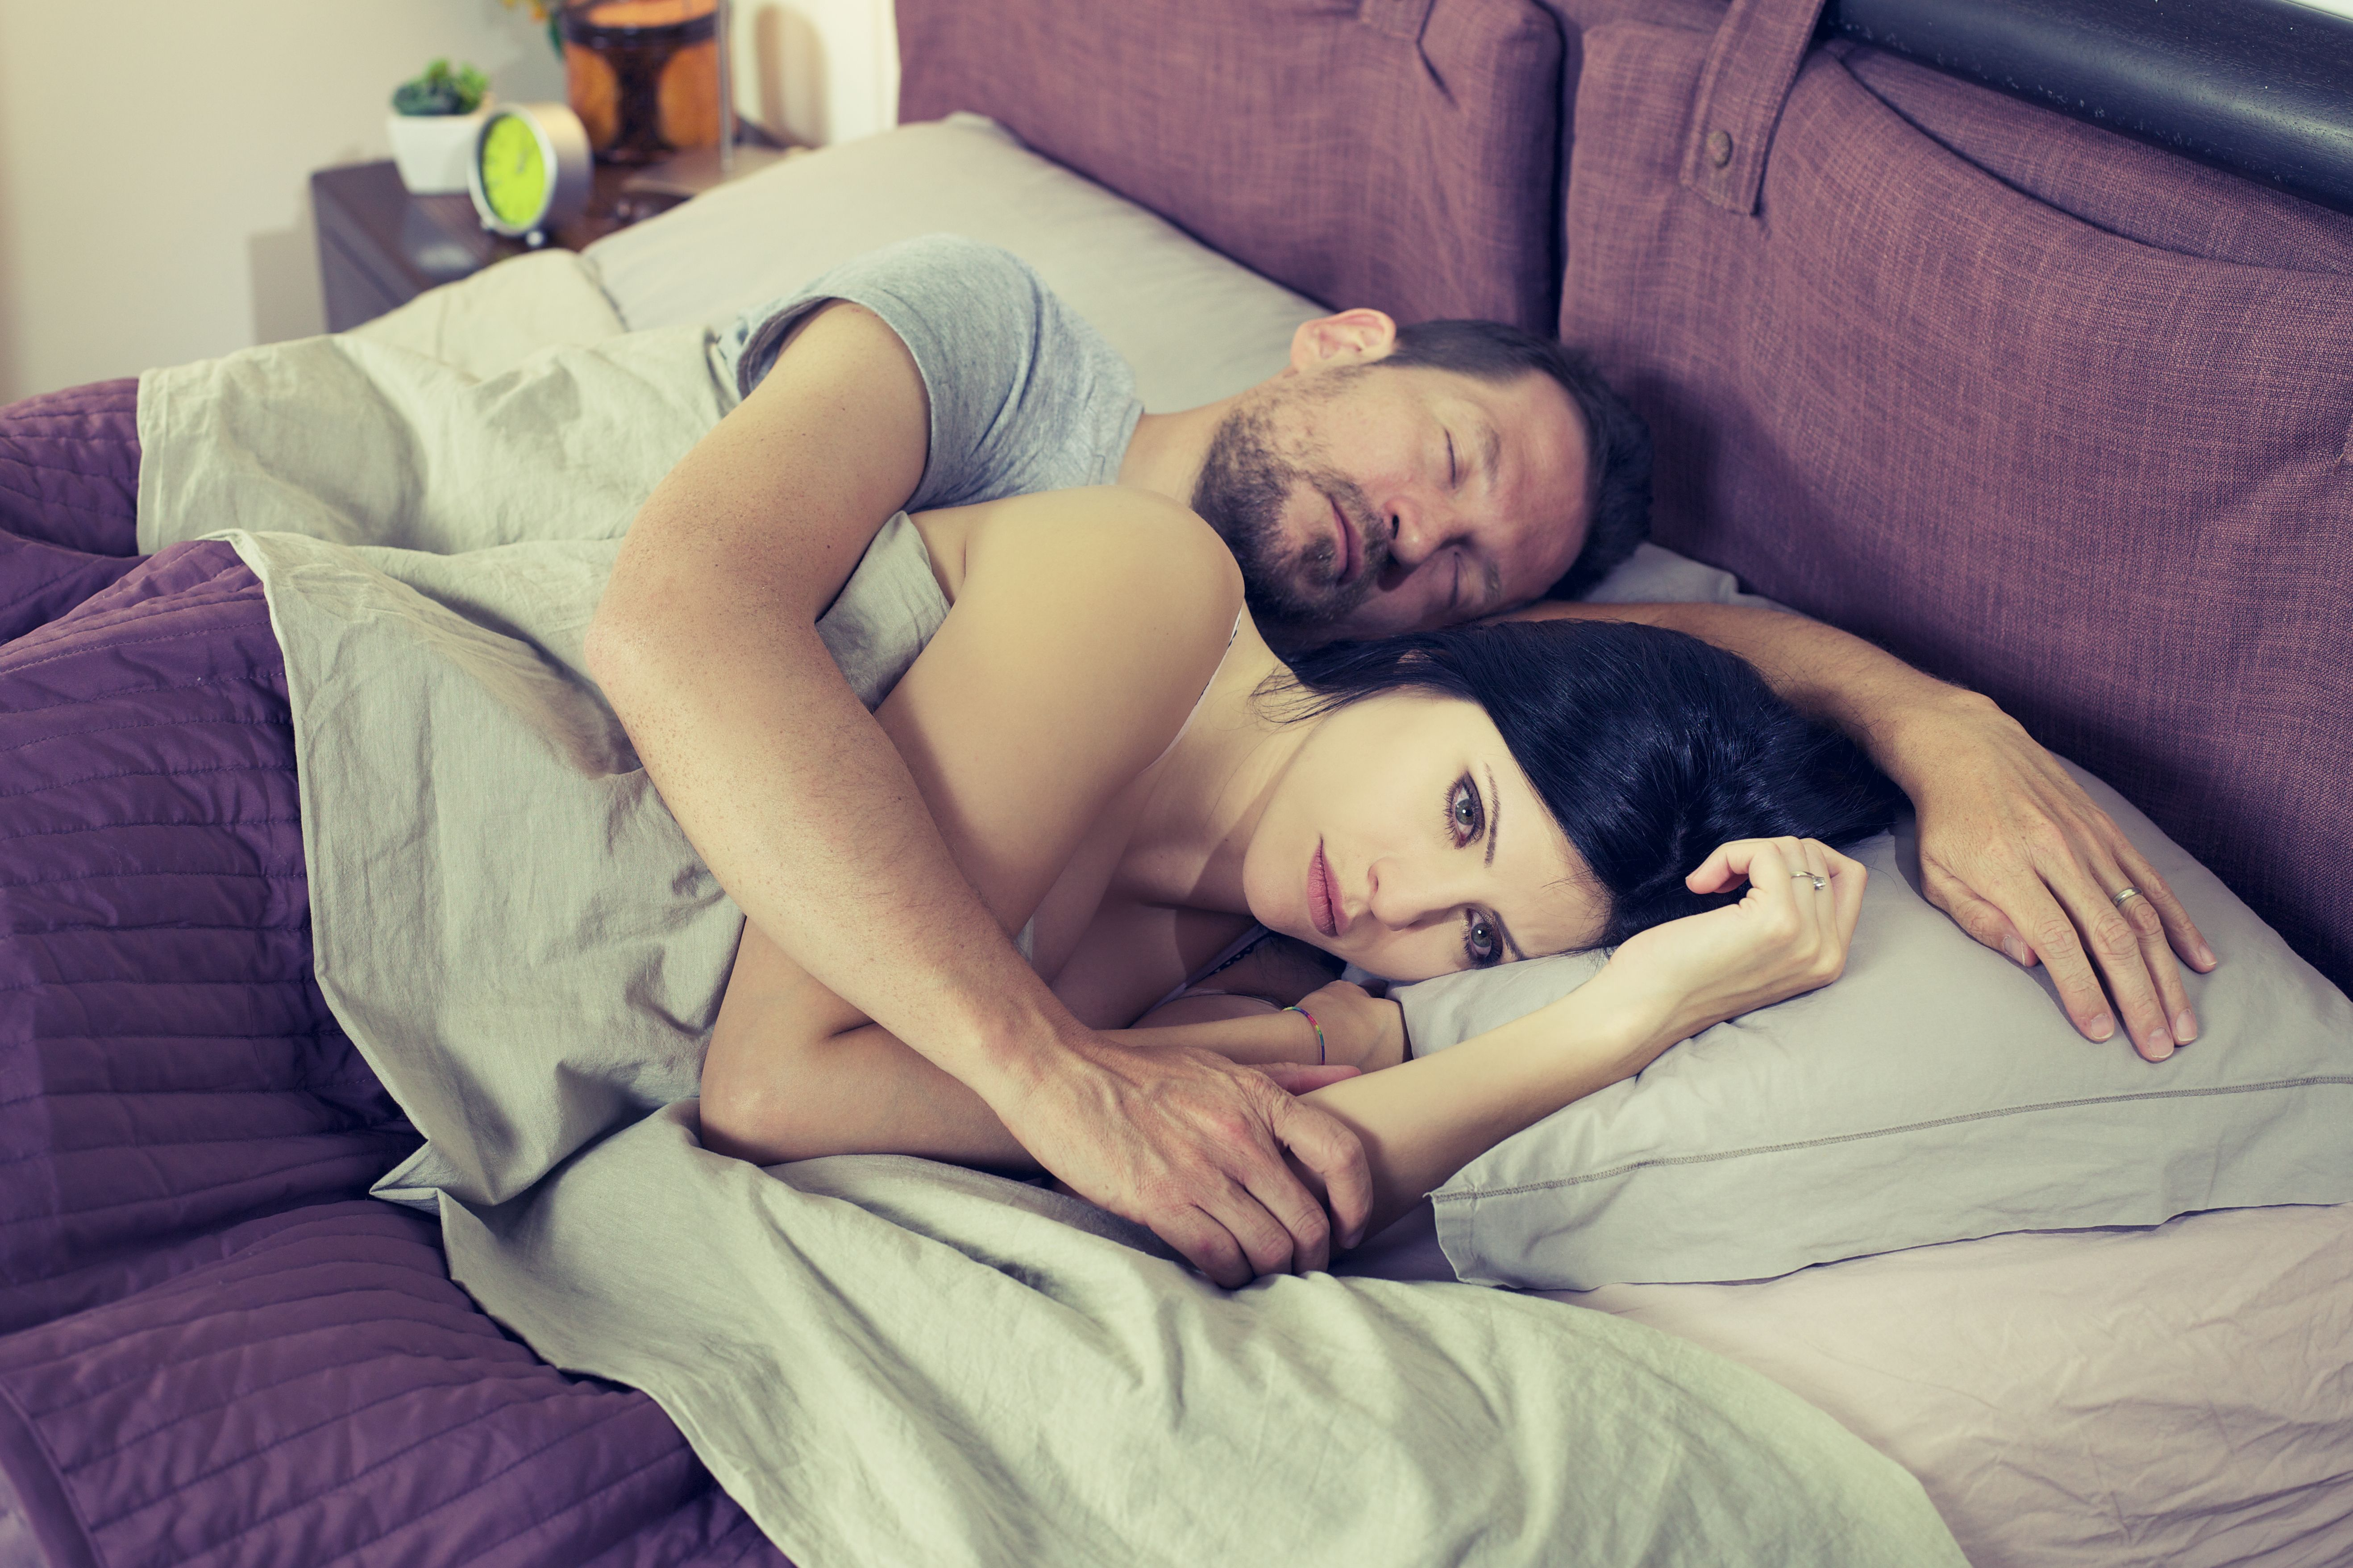 A woman in deep thought while her husband sleeps beside her. | Source: Shutterstock